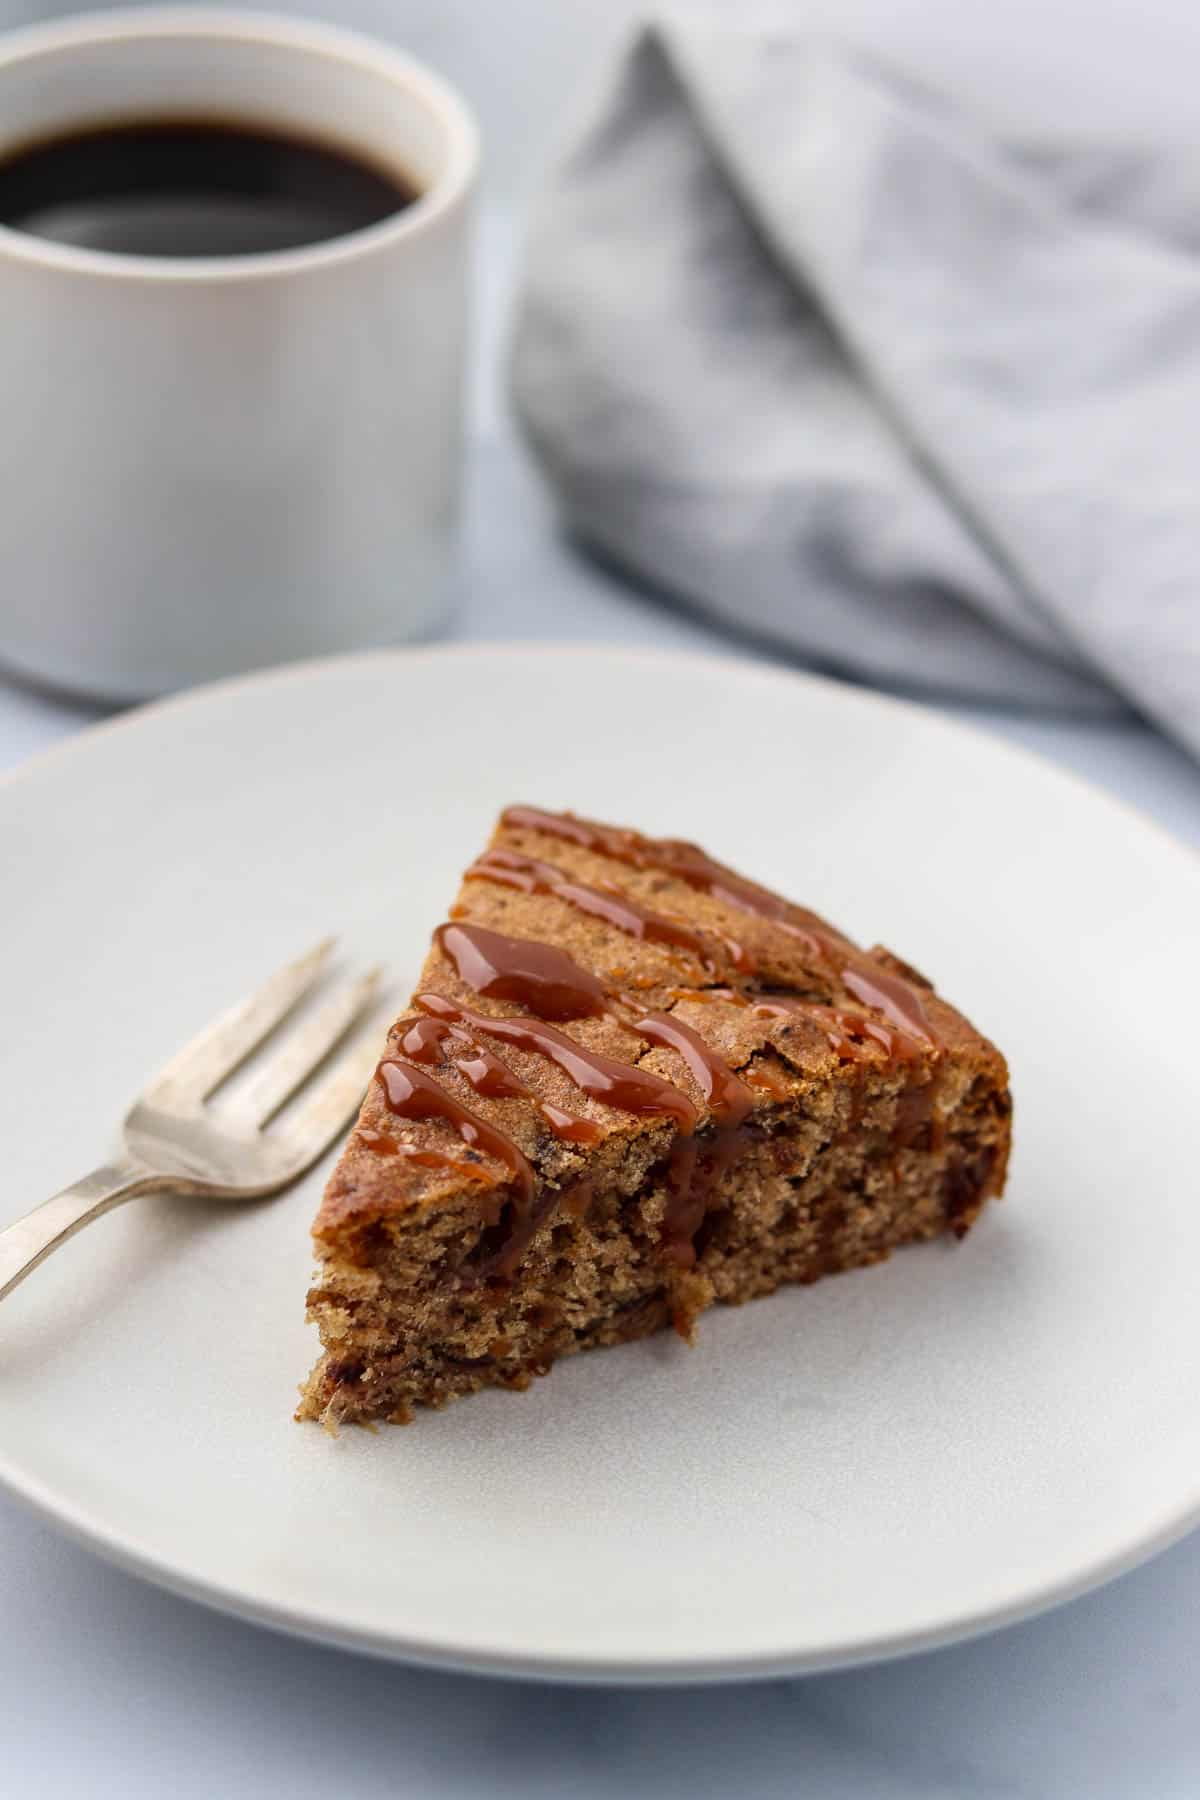 A slice of date cake drizzled with caramel on a plate next to a fork and cup of coffee.